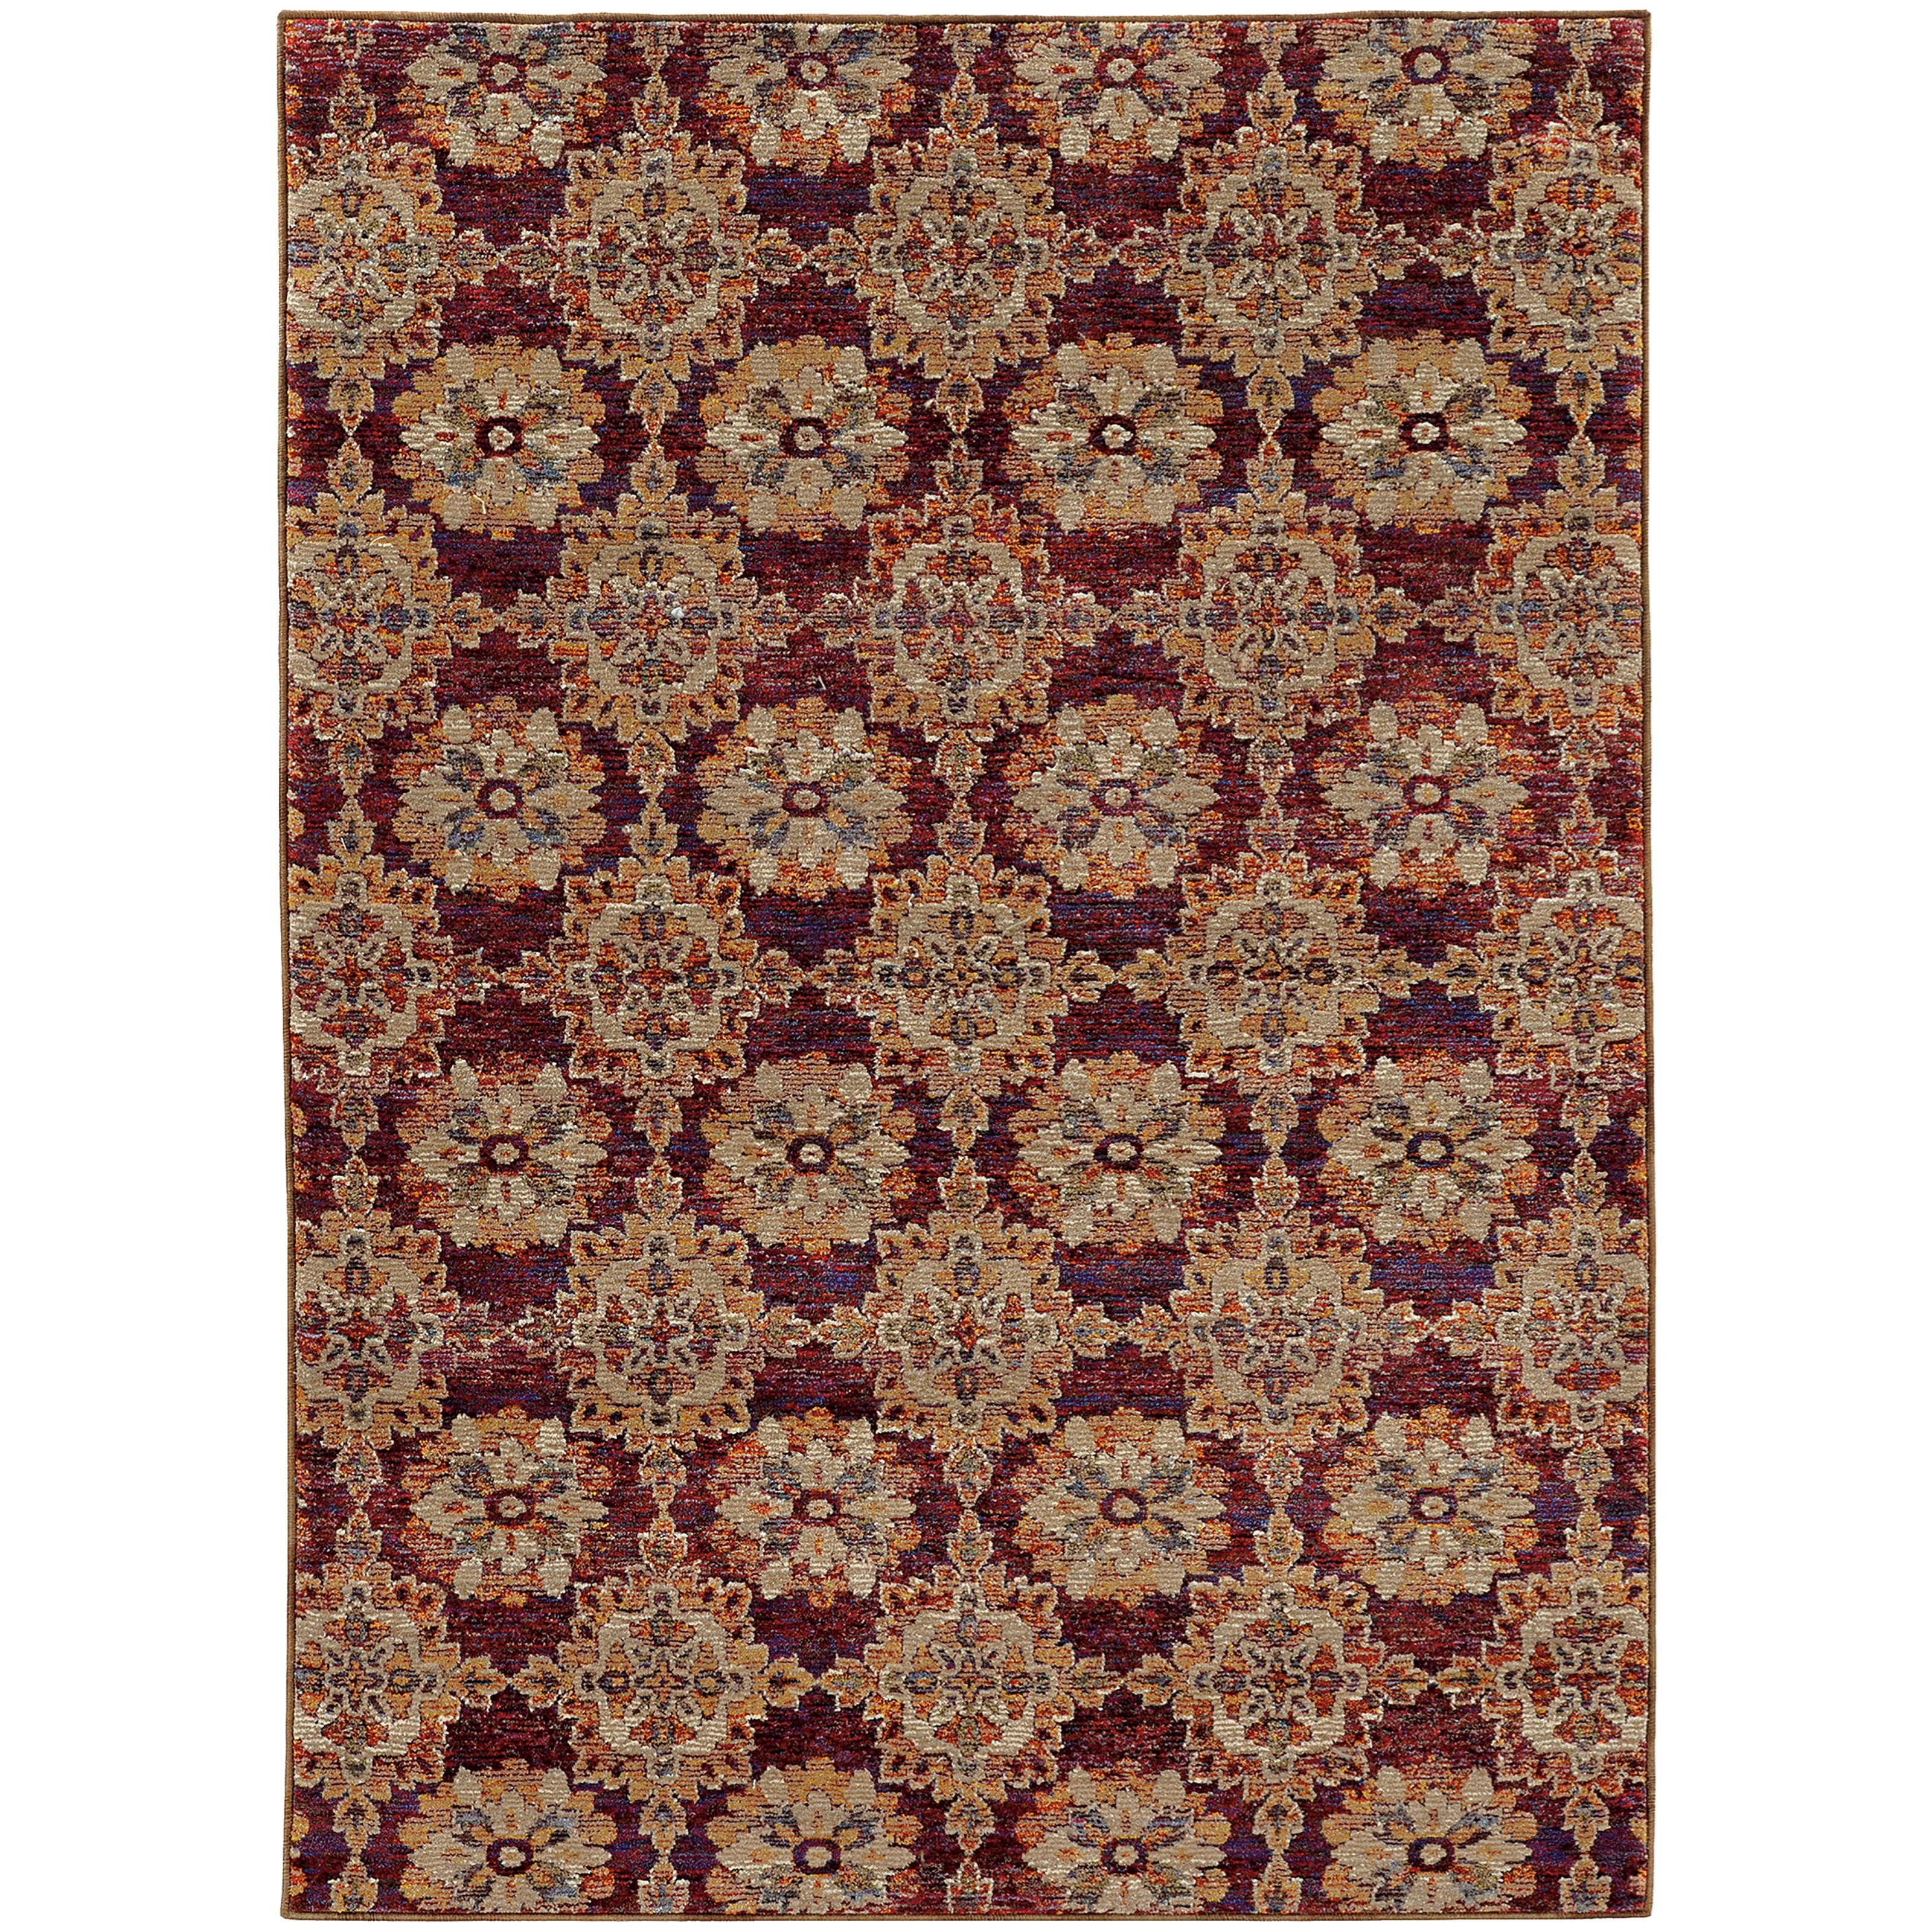 """Andorra 7'10"""" X 10'10"""" Casual Red/ Gold Rectangle Ru by Oriental Weavers at Steger's Furniture"""